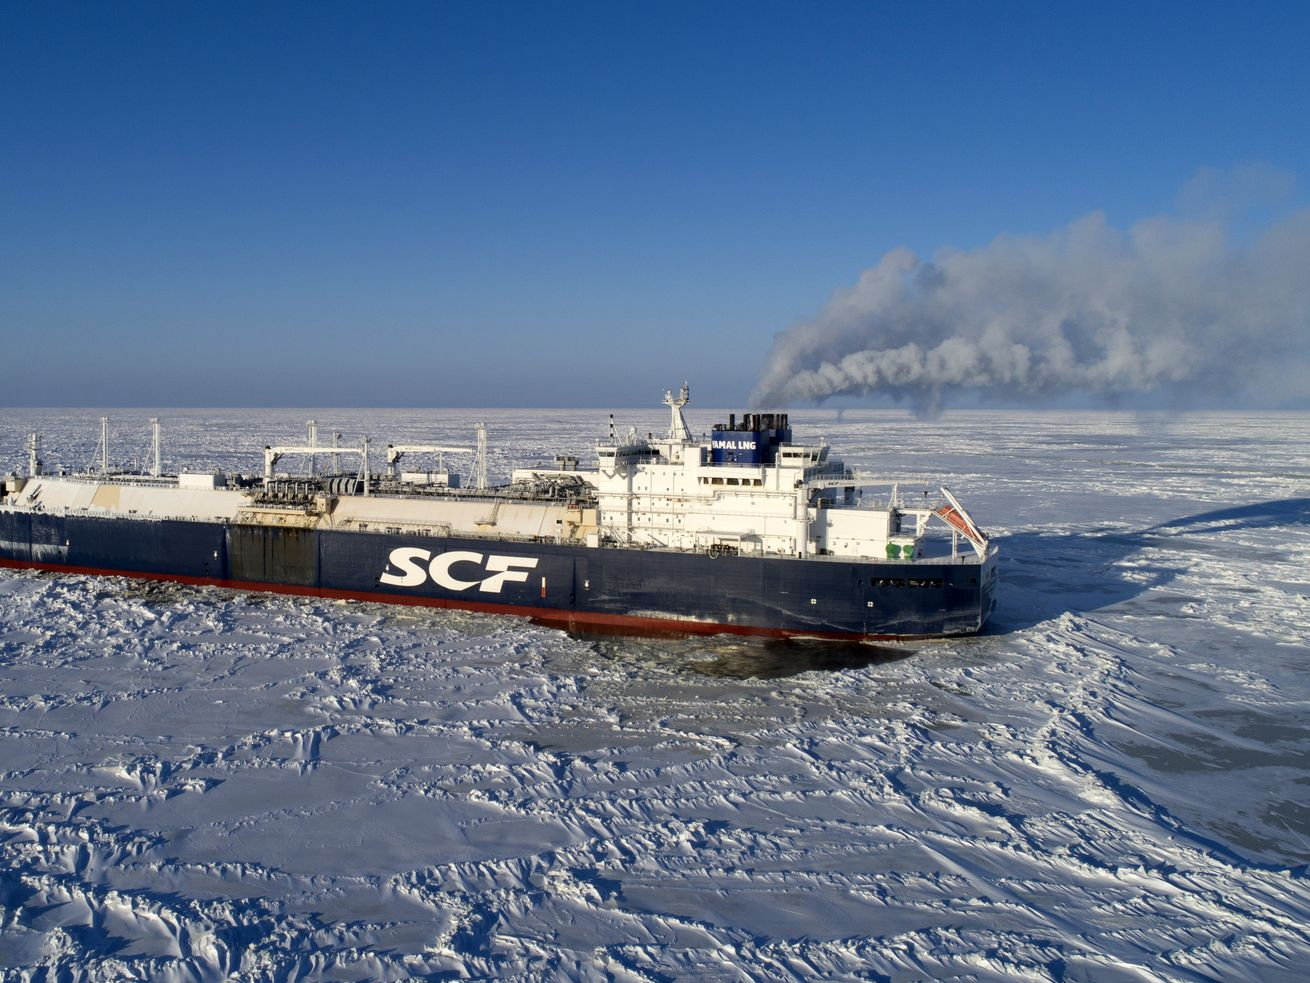 A large blue and white commercial ship belching smoke travels across sea ice in the middle of winter.